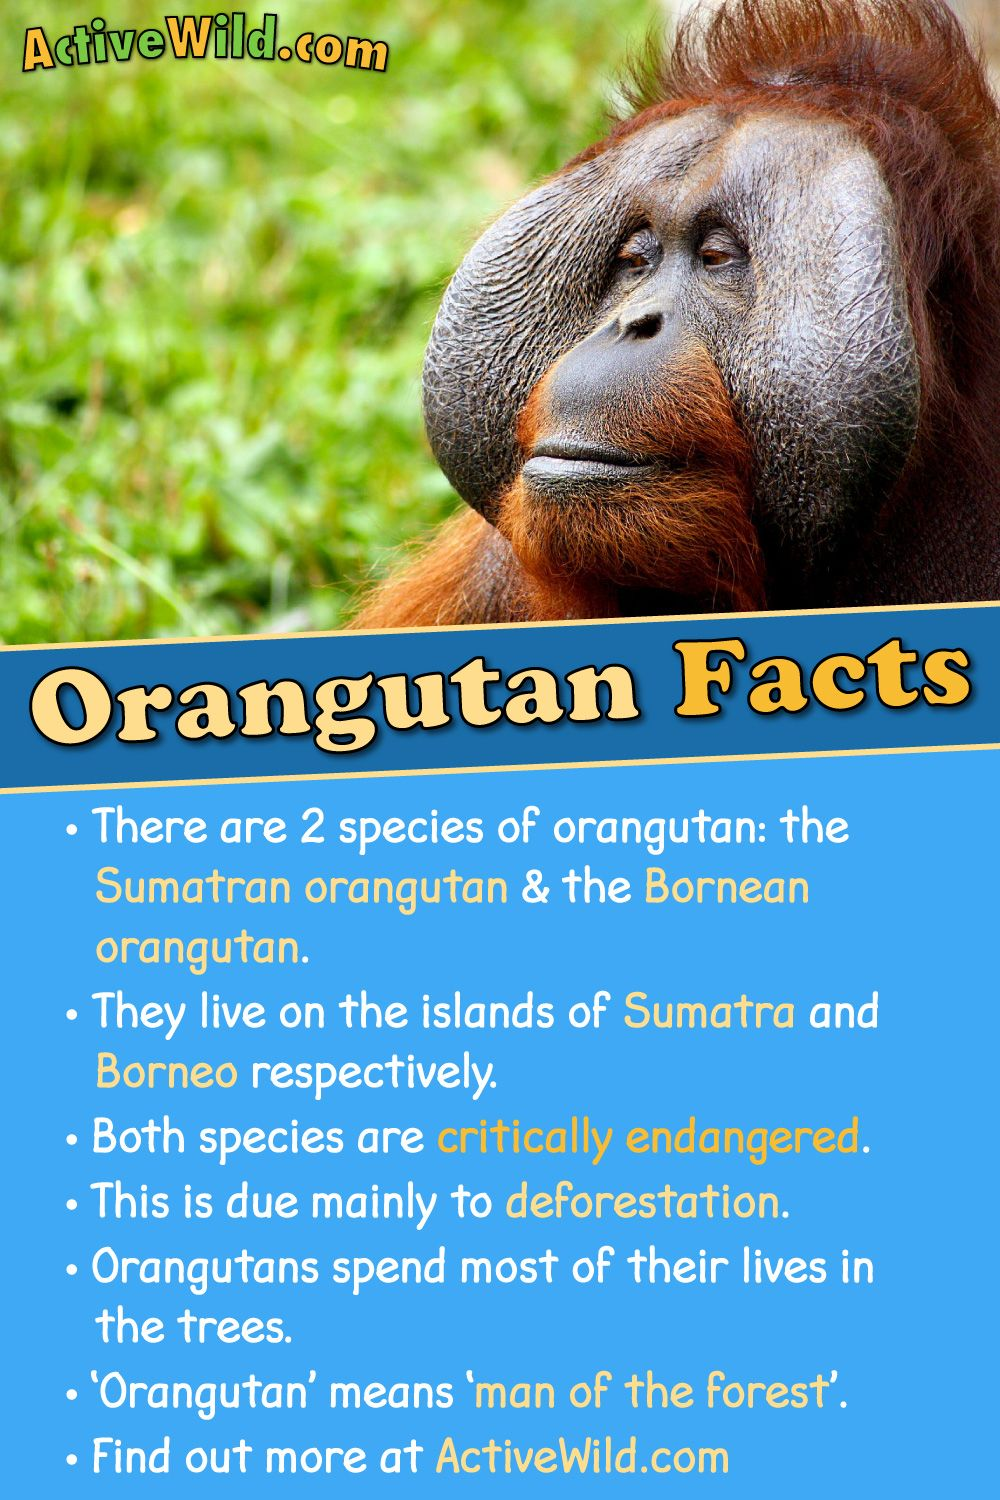 Orangutan Facts, Pictures, Video & Information. Discover A